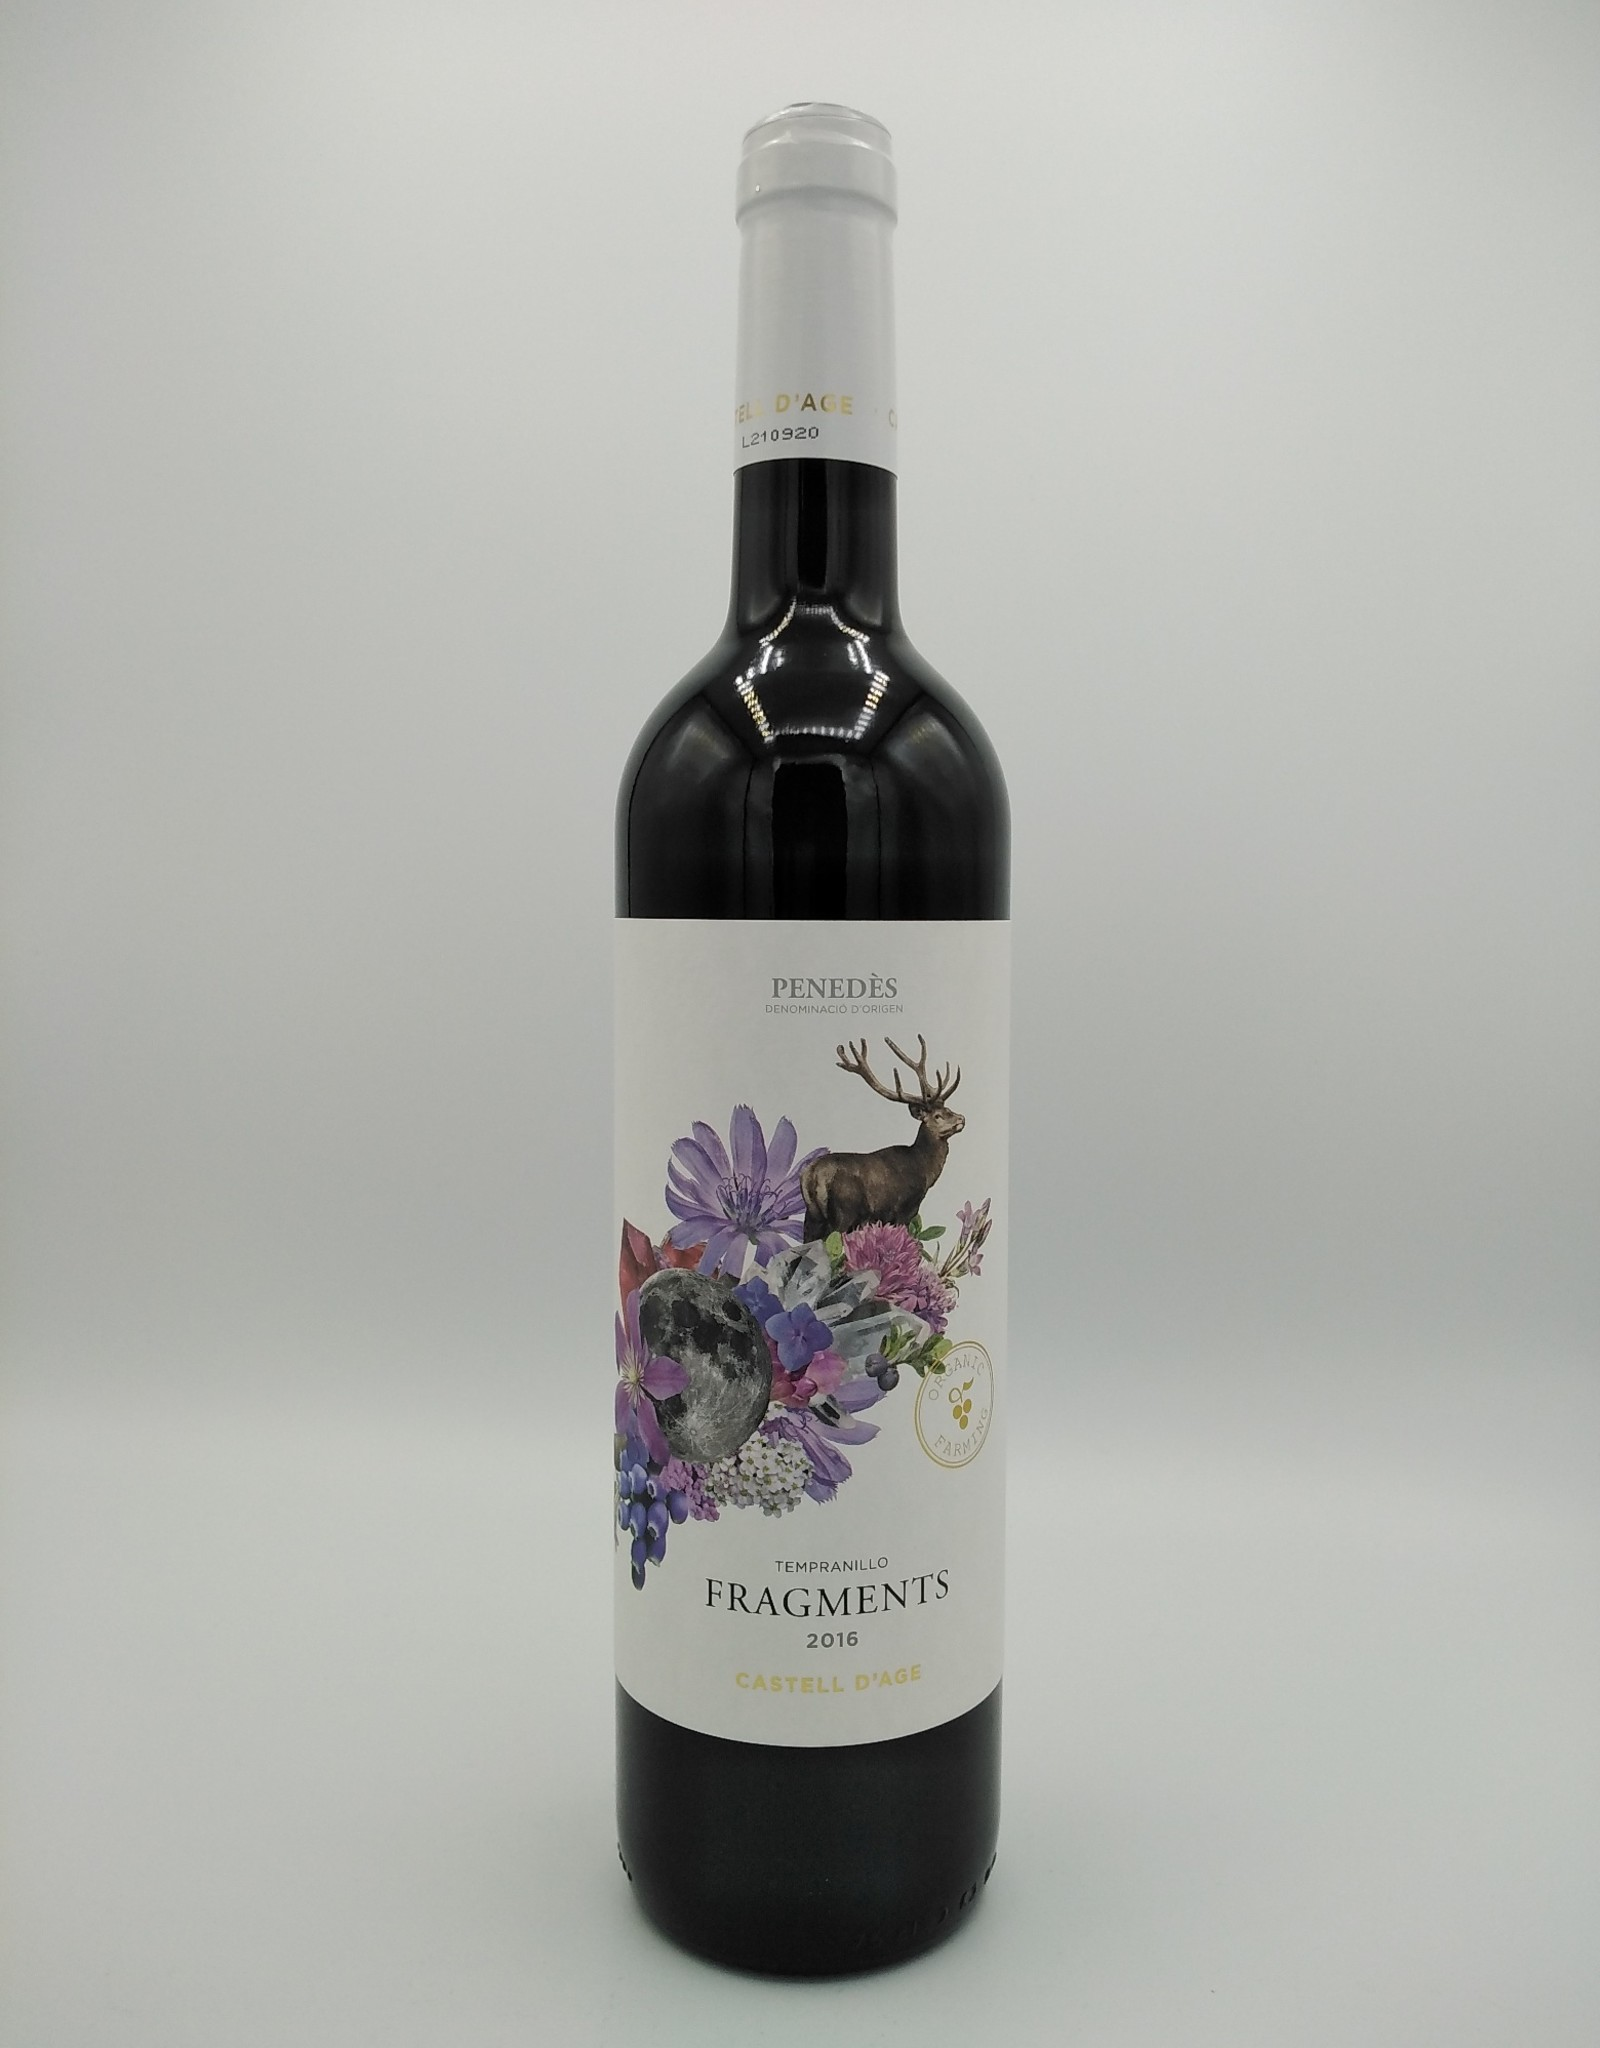 Castell d'Age Castell D'Age - Fragments - Tempranillo 2016